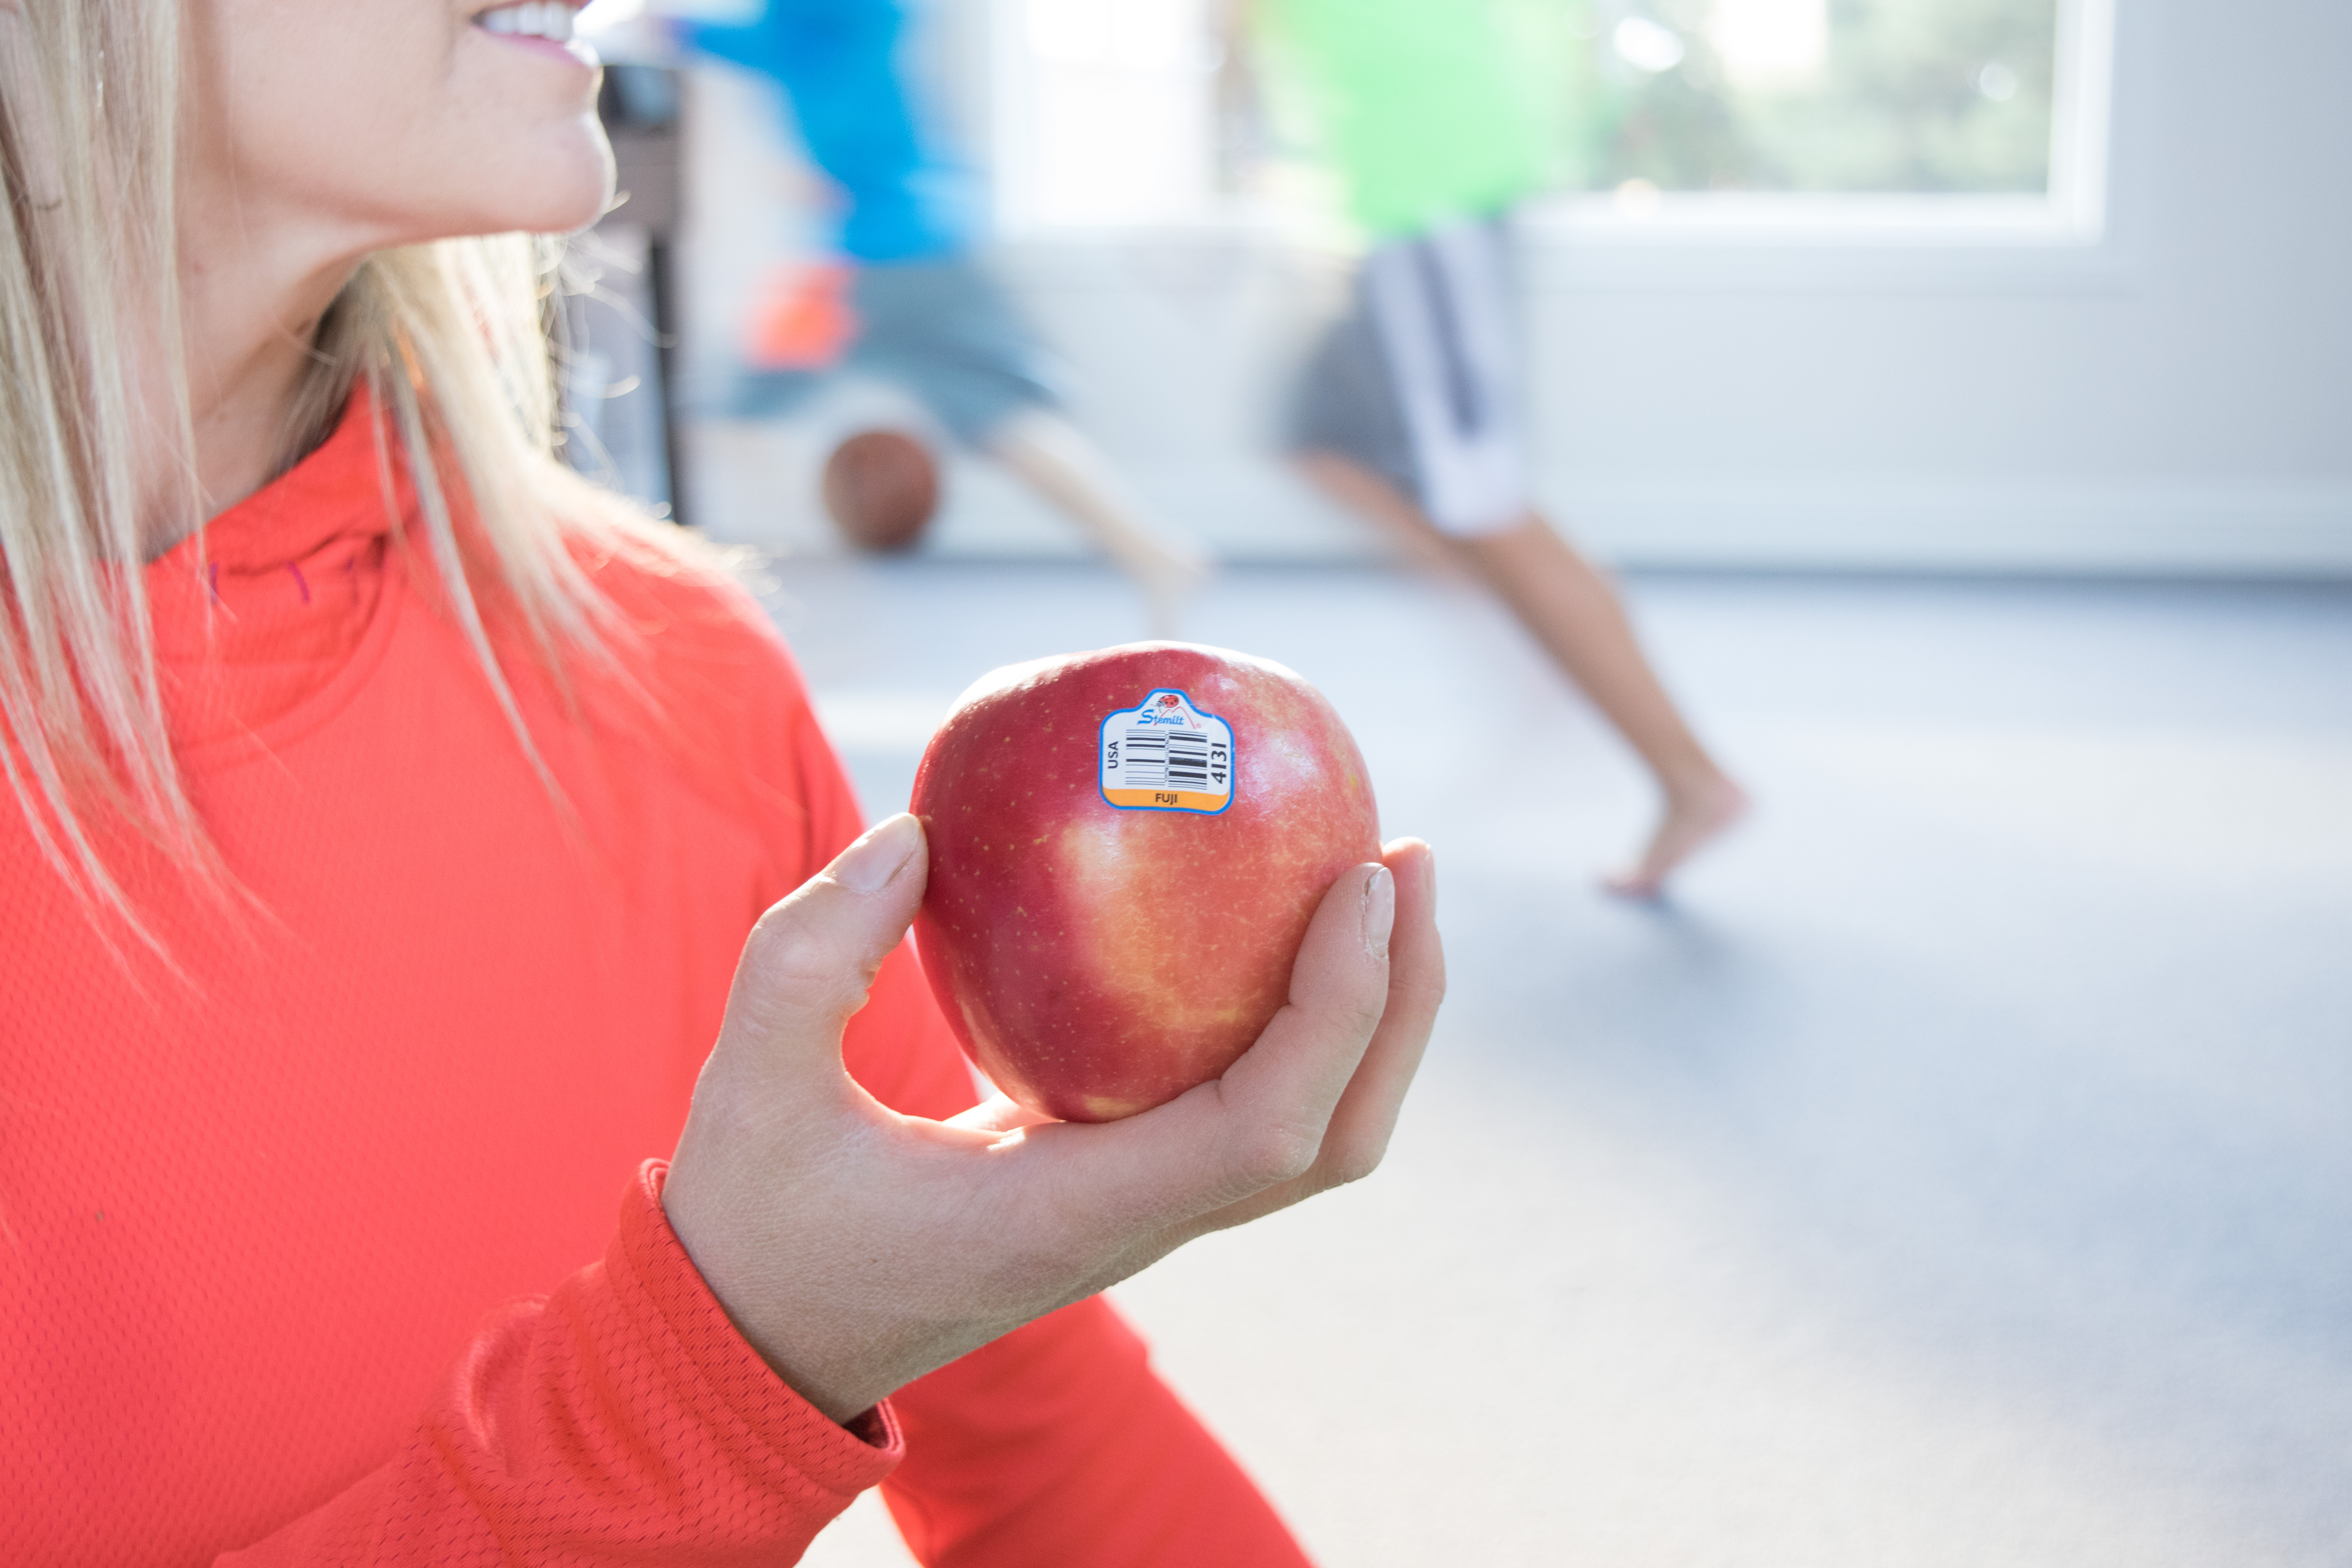 Stemilt Inspires Shoppers To Eat More Apples With New